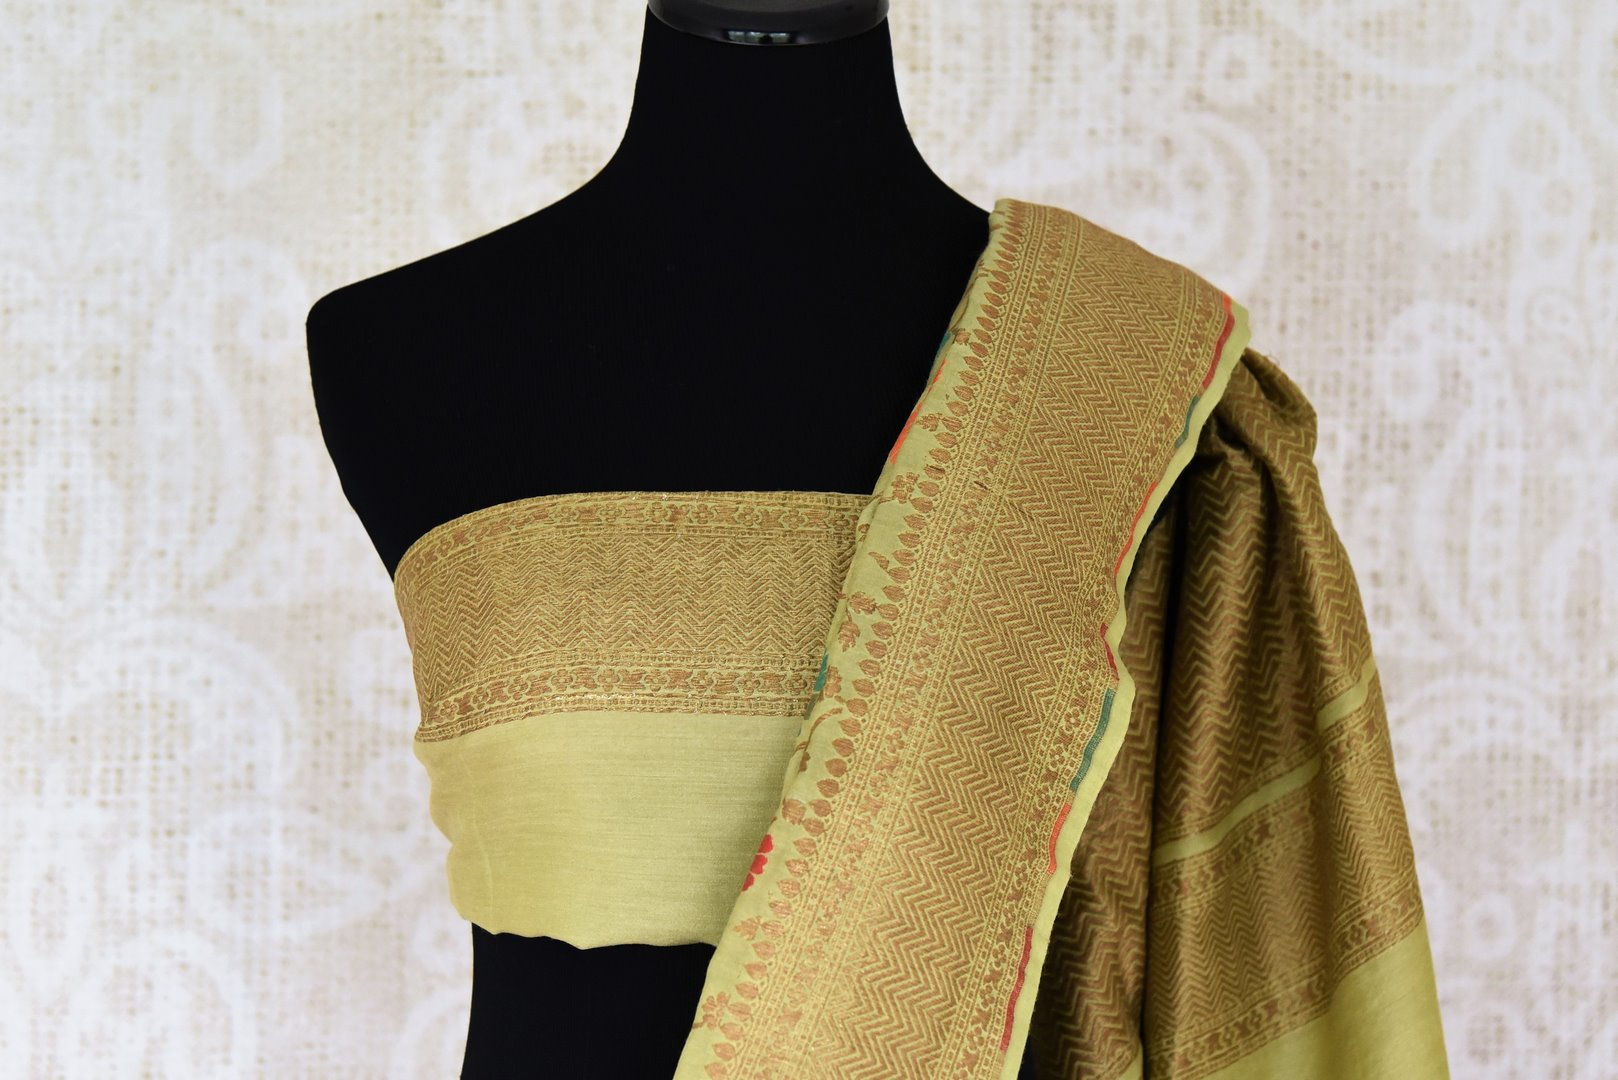 Shop green color muga Banarasi saree online in USA with floral zari and minakari work from Pure Elegance online store. Visit our exclusive Indian clothing store in USA and get floored by a range of exquisite pure handloom sarees, Banarasi sarees, silk sarees, Indian jewelry and much more to complete your ethnic look.-blouse pallu